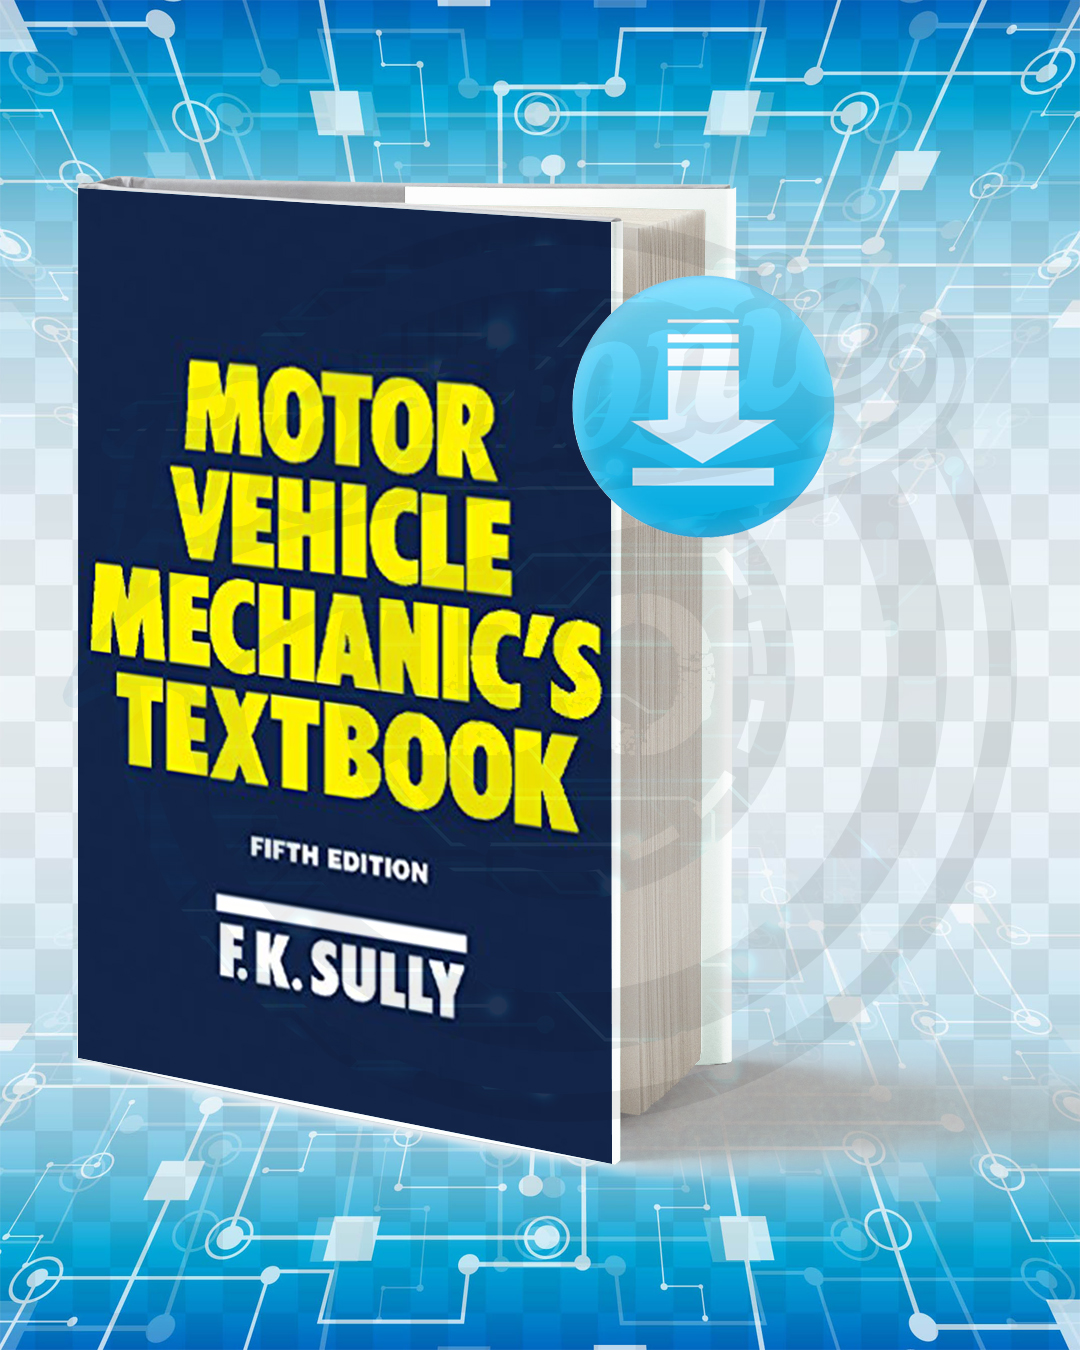 Free Book Motor Vehicle Mechanic's Textbook pdf.